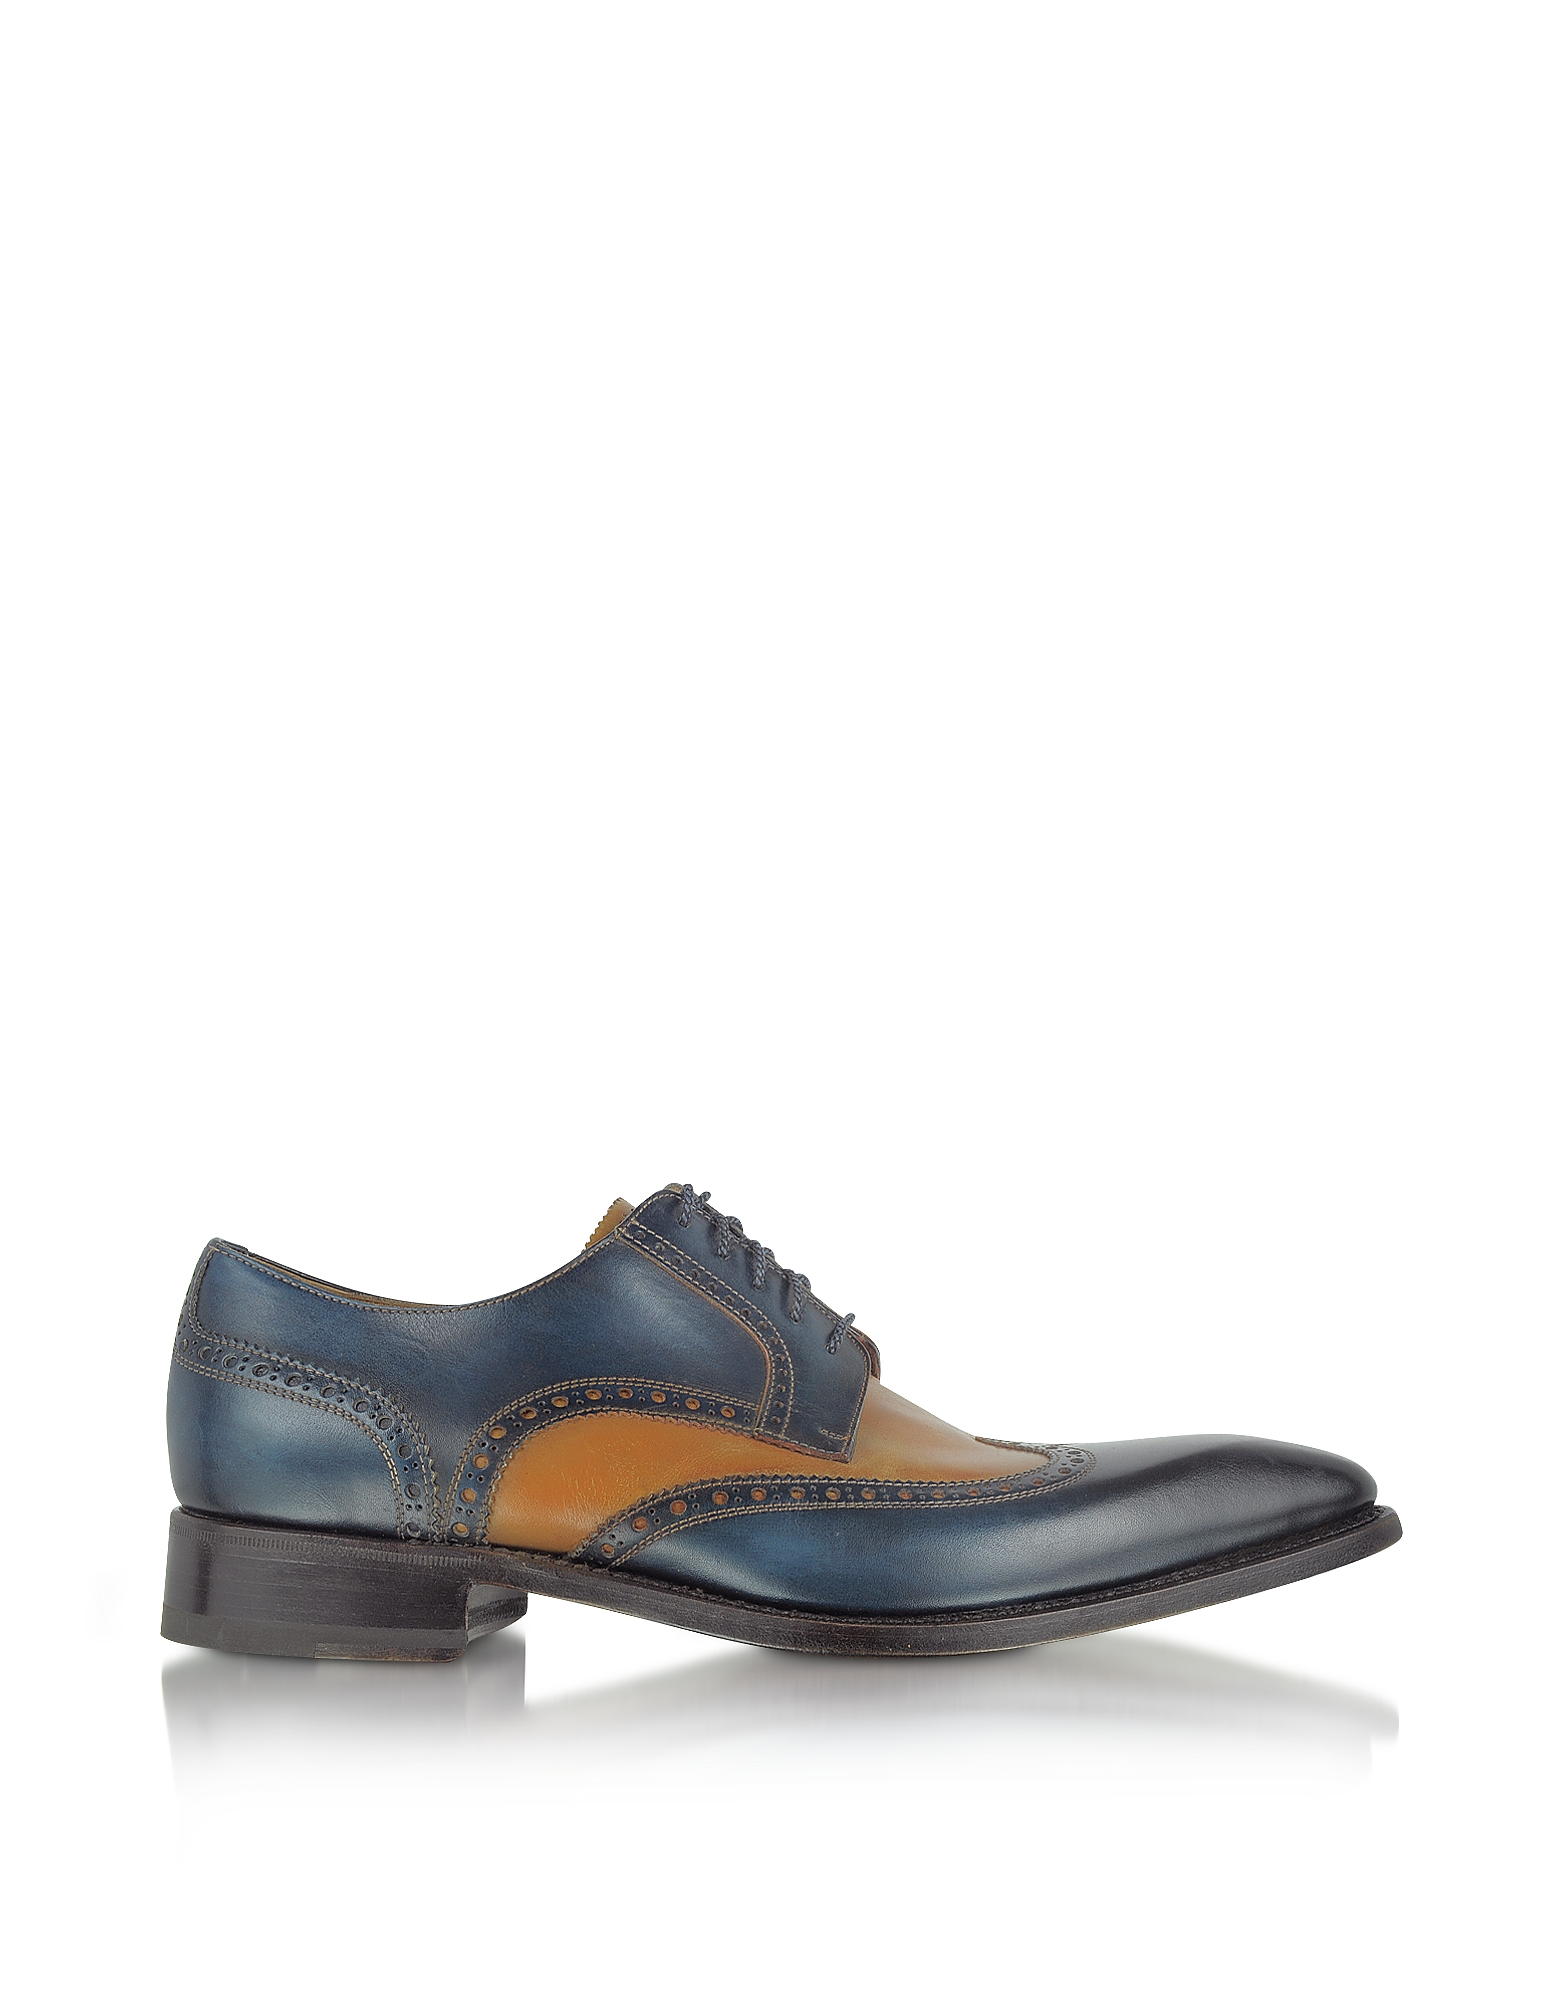 Forzieri Shoes, Two-Tone Handcrafted Leather Wingtip Oxford Shoes